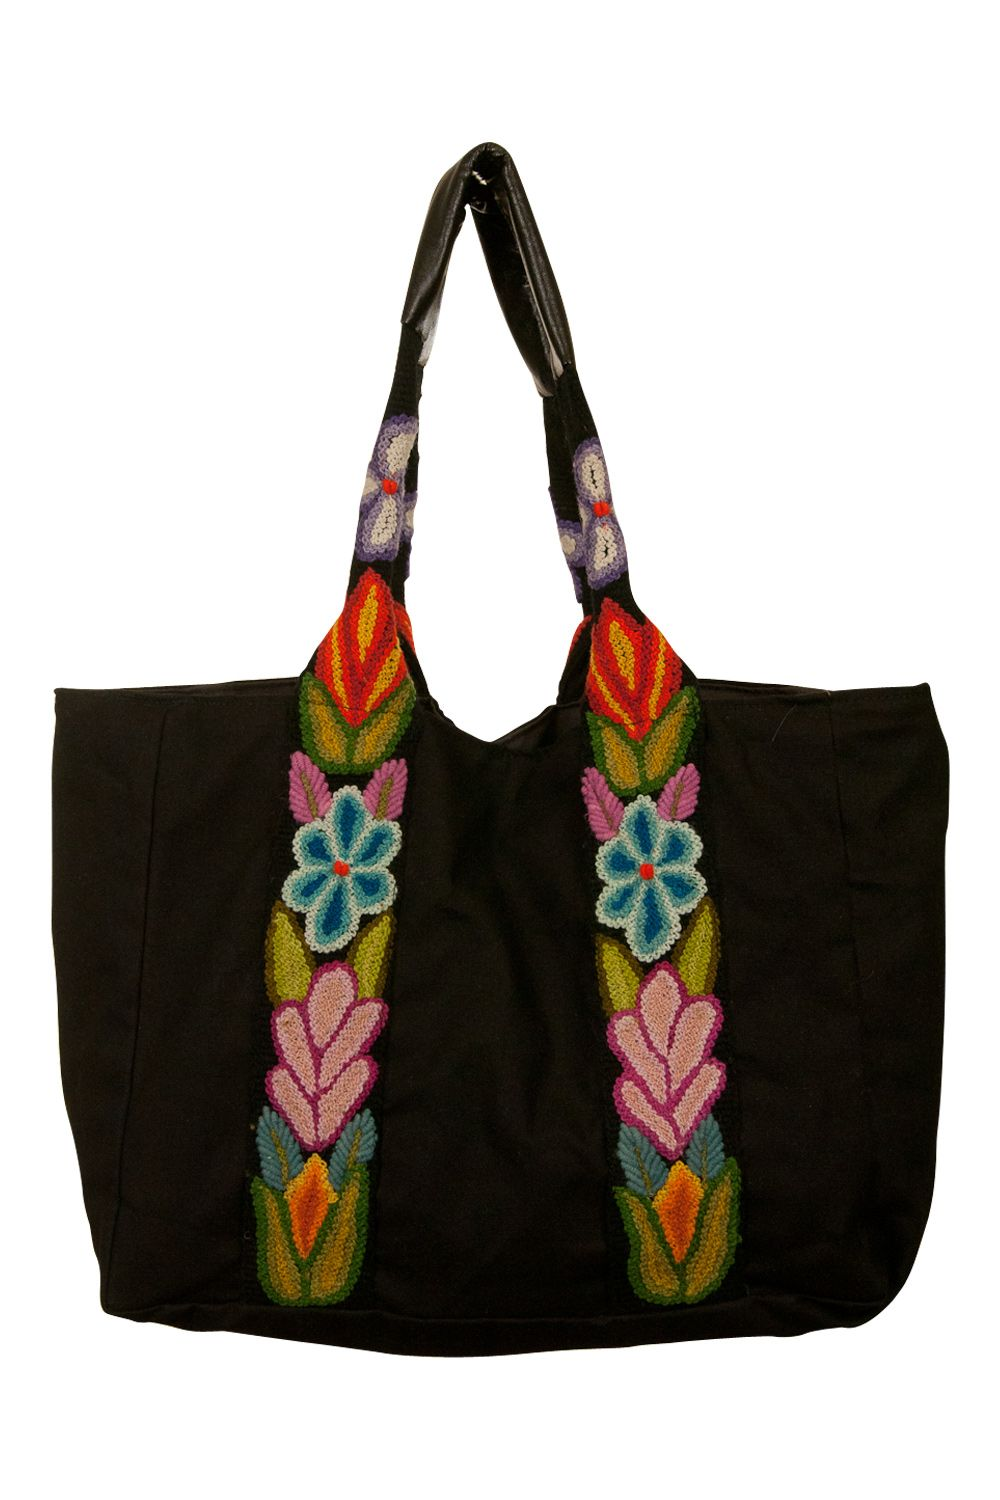 Ropa Bolso Jenny Tote Krauss Floral Embroidered Bag Pinterest 6wqqSxZP0